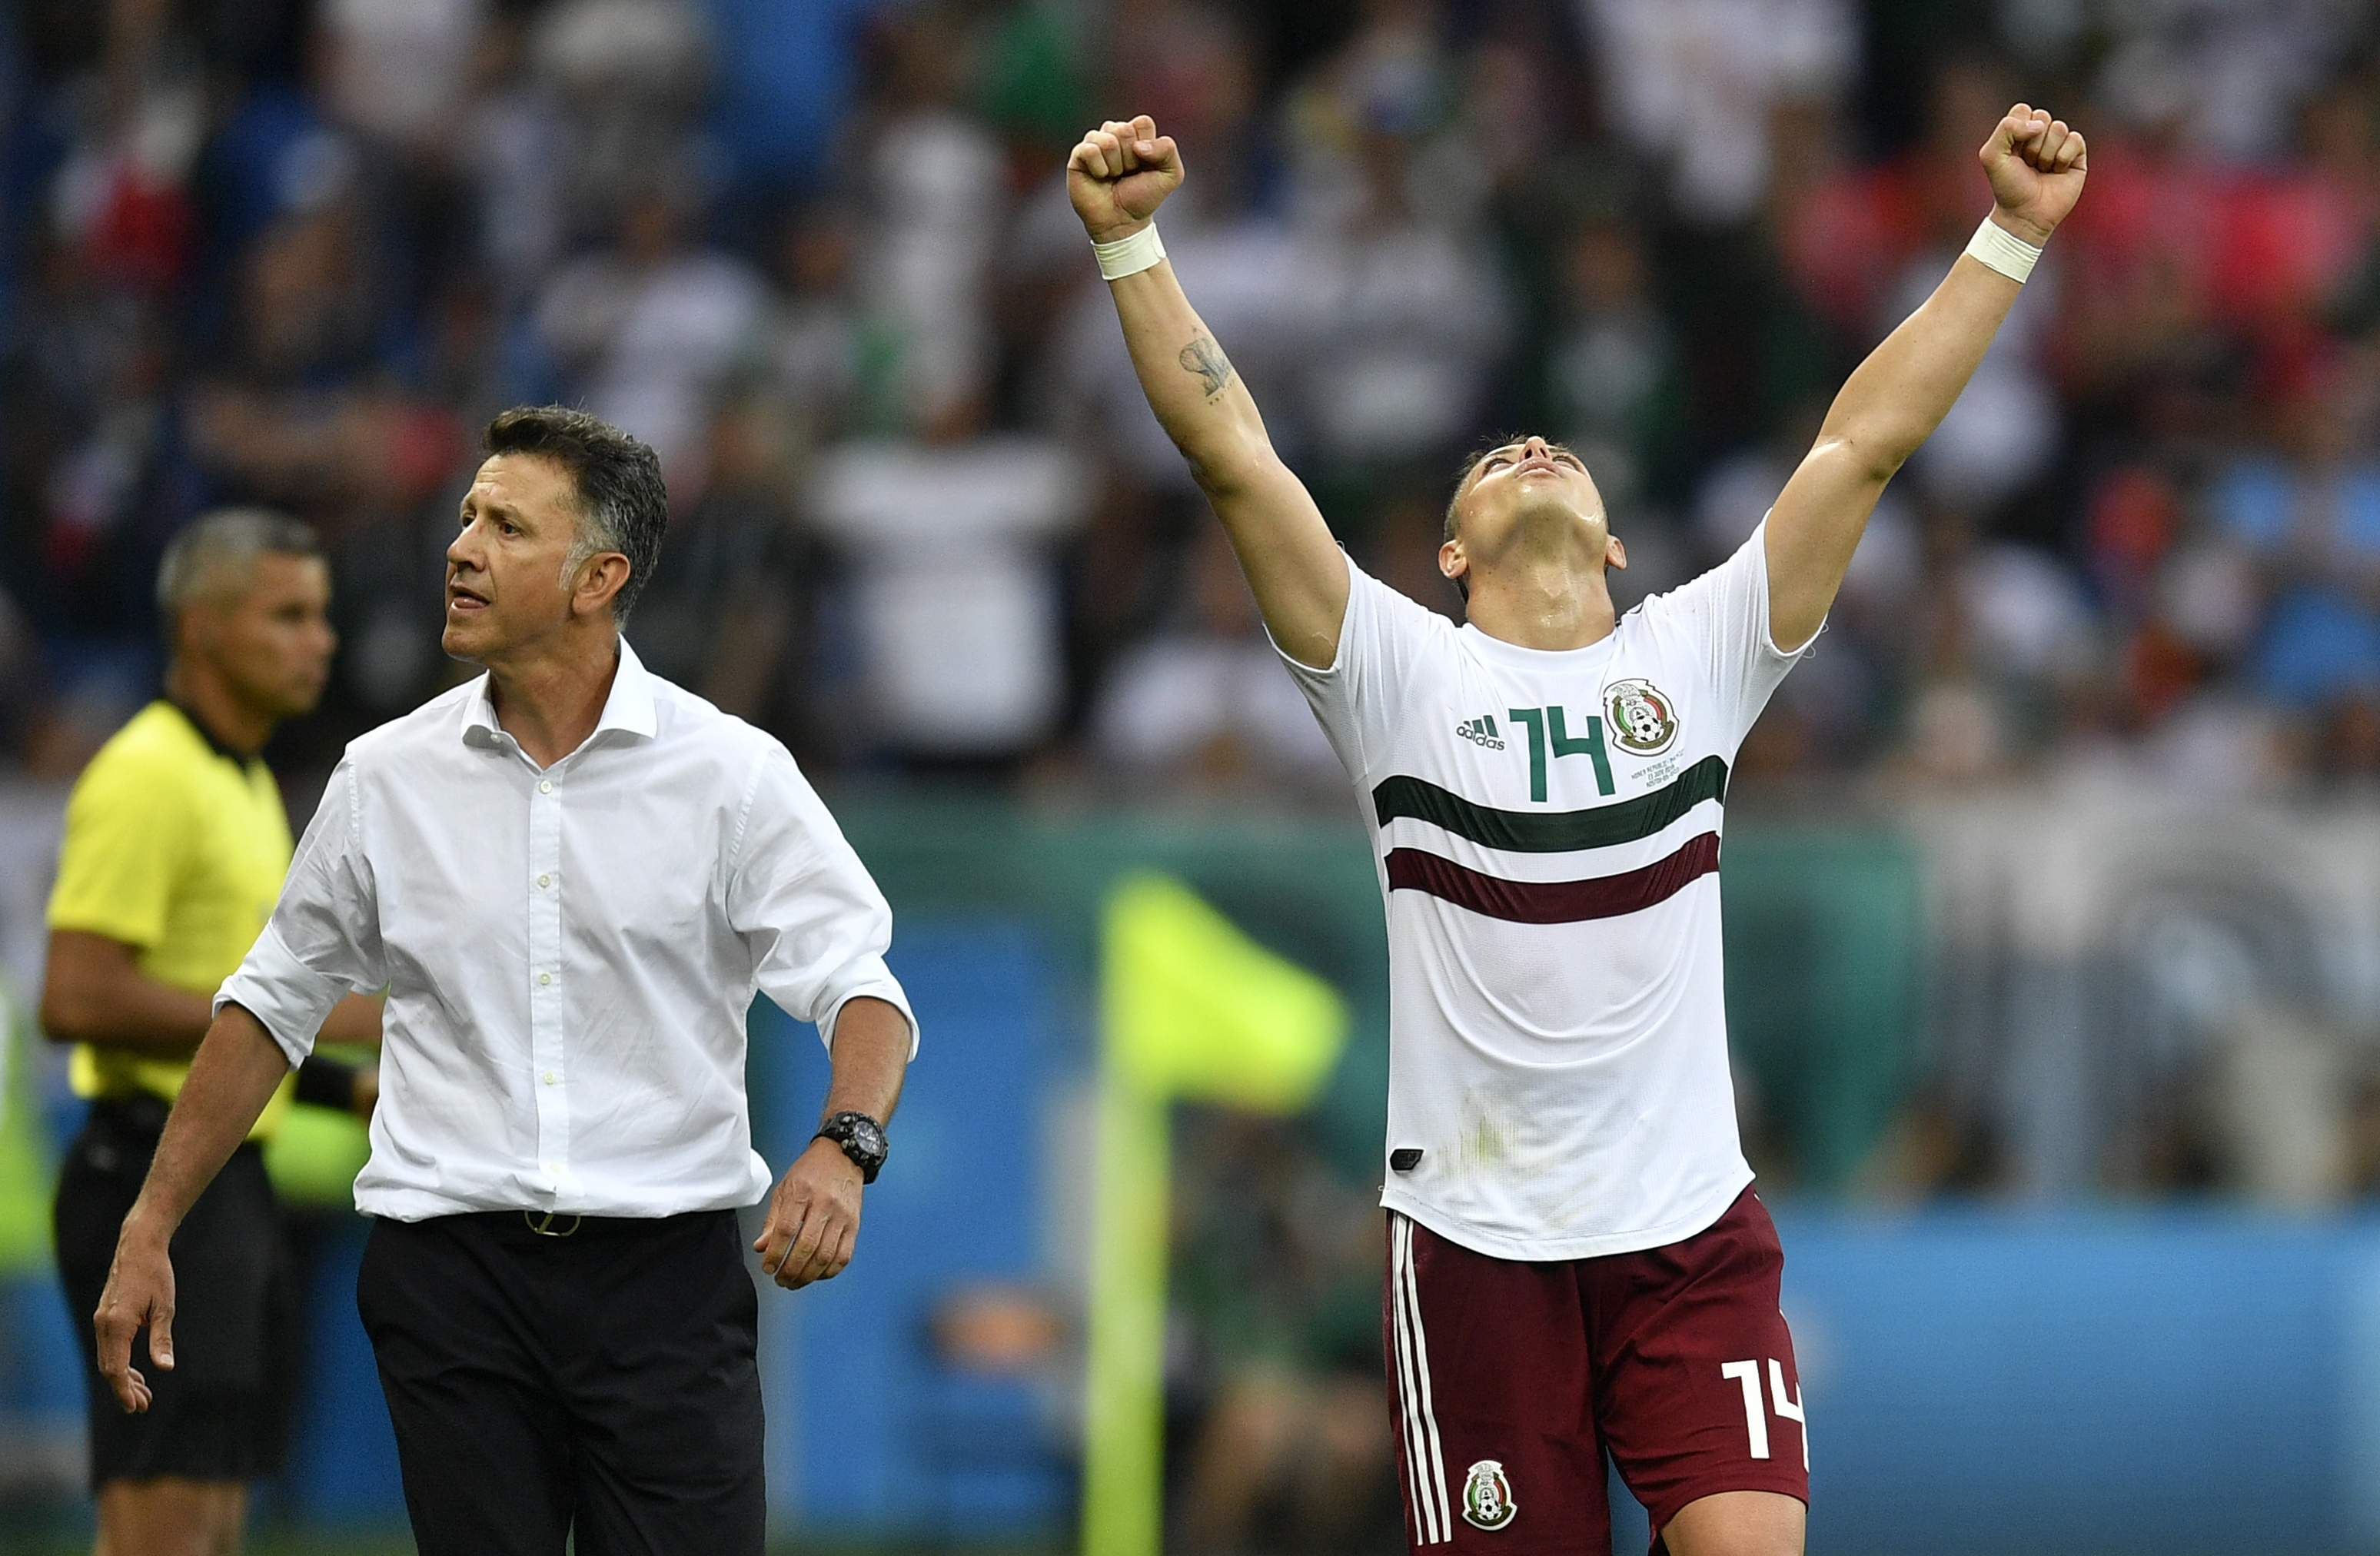 <div class='meta'><div class='origin-logo' data-origin='none'></div><span class='caption-text' data-credit='Martin Meissner/AP Photo'>Mexico's Javier Hernandez celebrates beside Mexico head coach Juan Carlos Osorio at the end of the group F match between Mexico and South Korea in the Rostov Arena on June 23.</span></div>